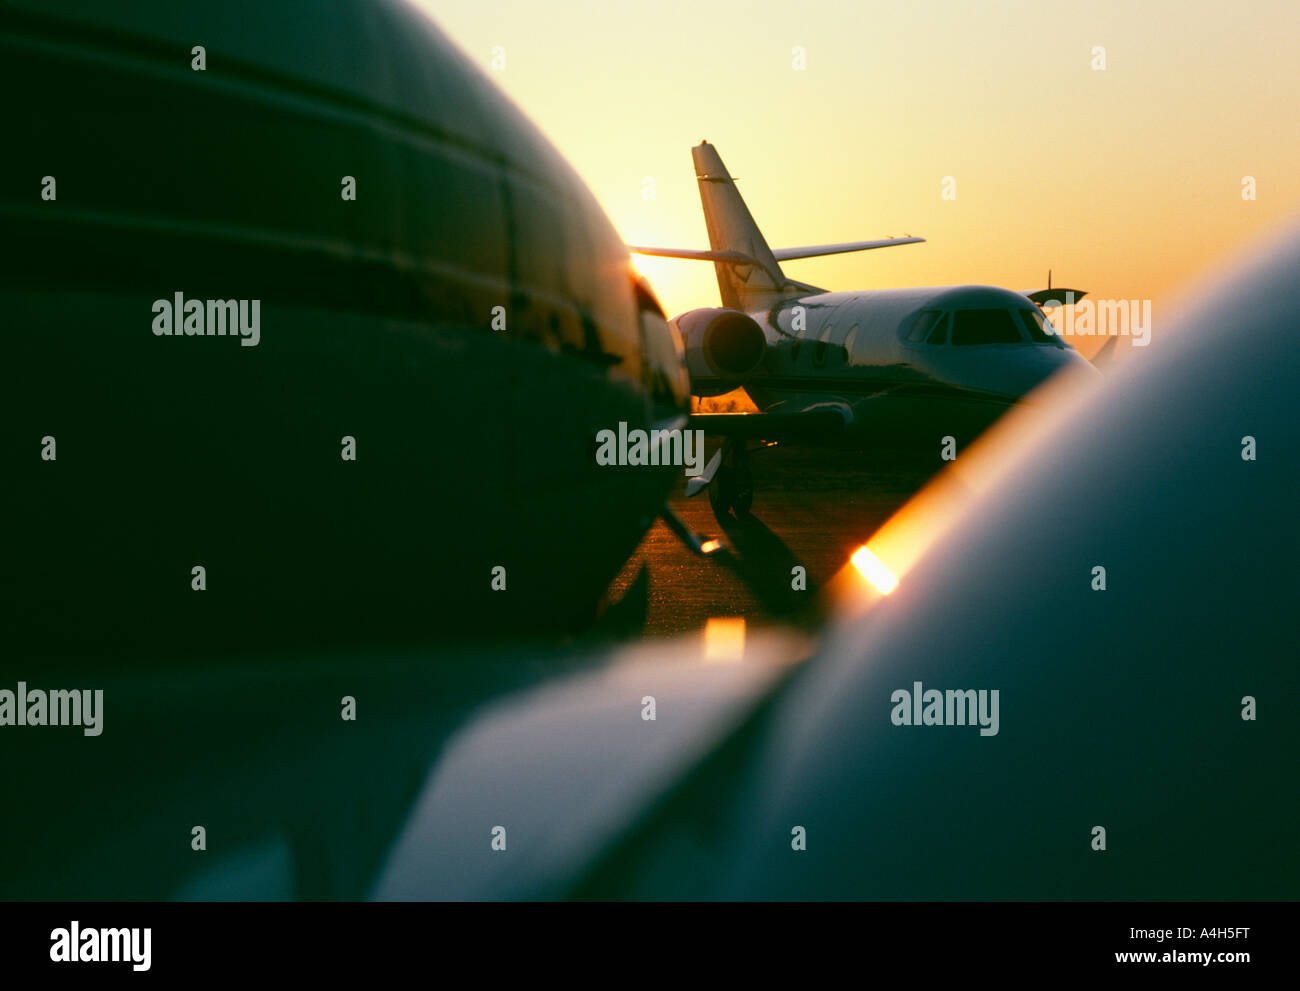 Private Jet Aircraft At Sunset, - Stock Image